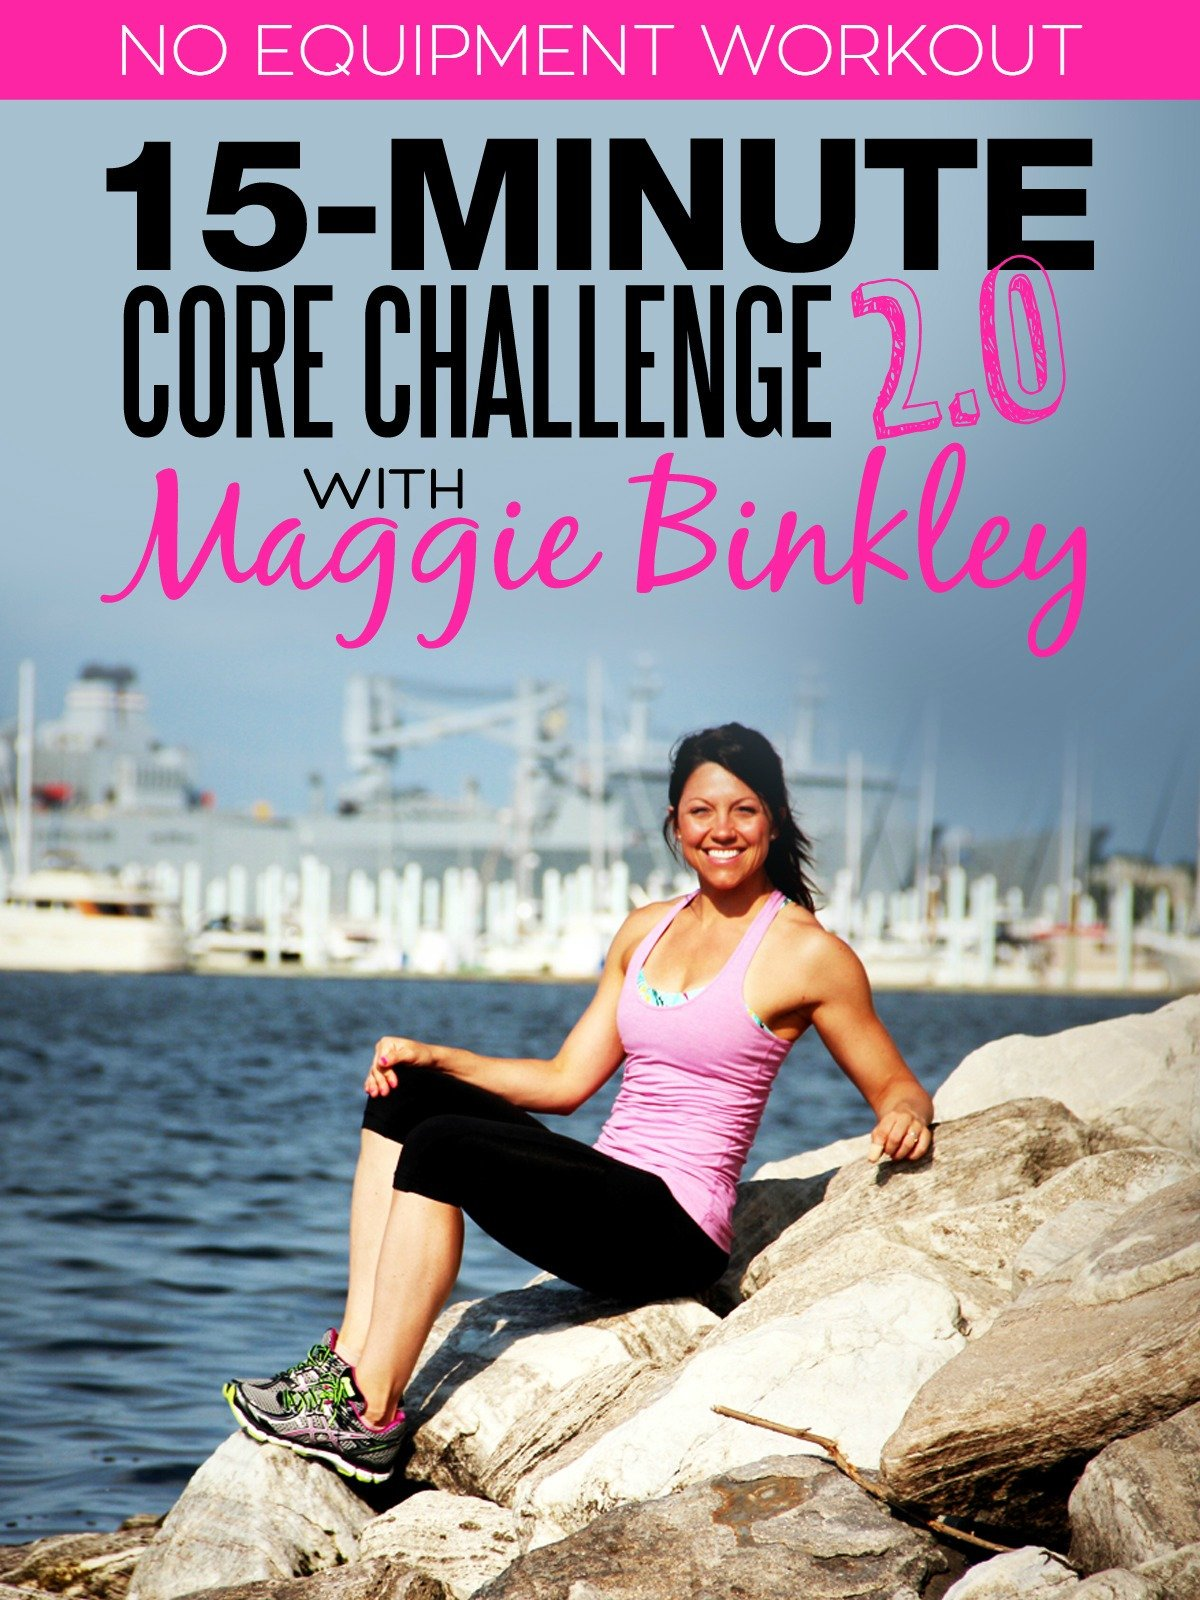 15-Minute Core Challenge 2.0 Workout